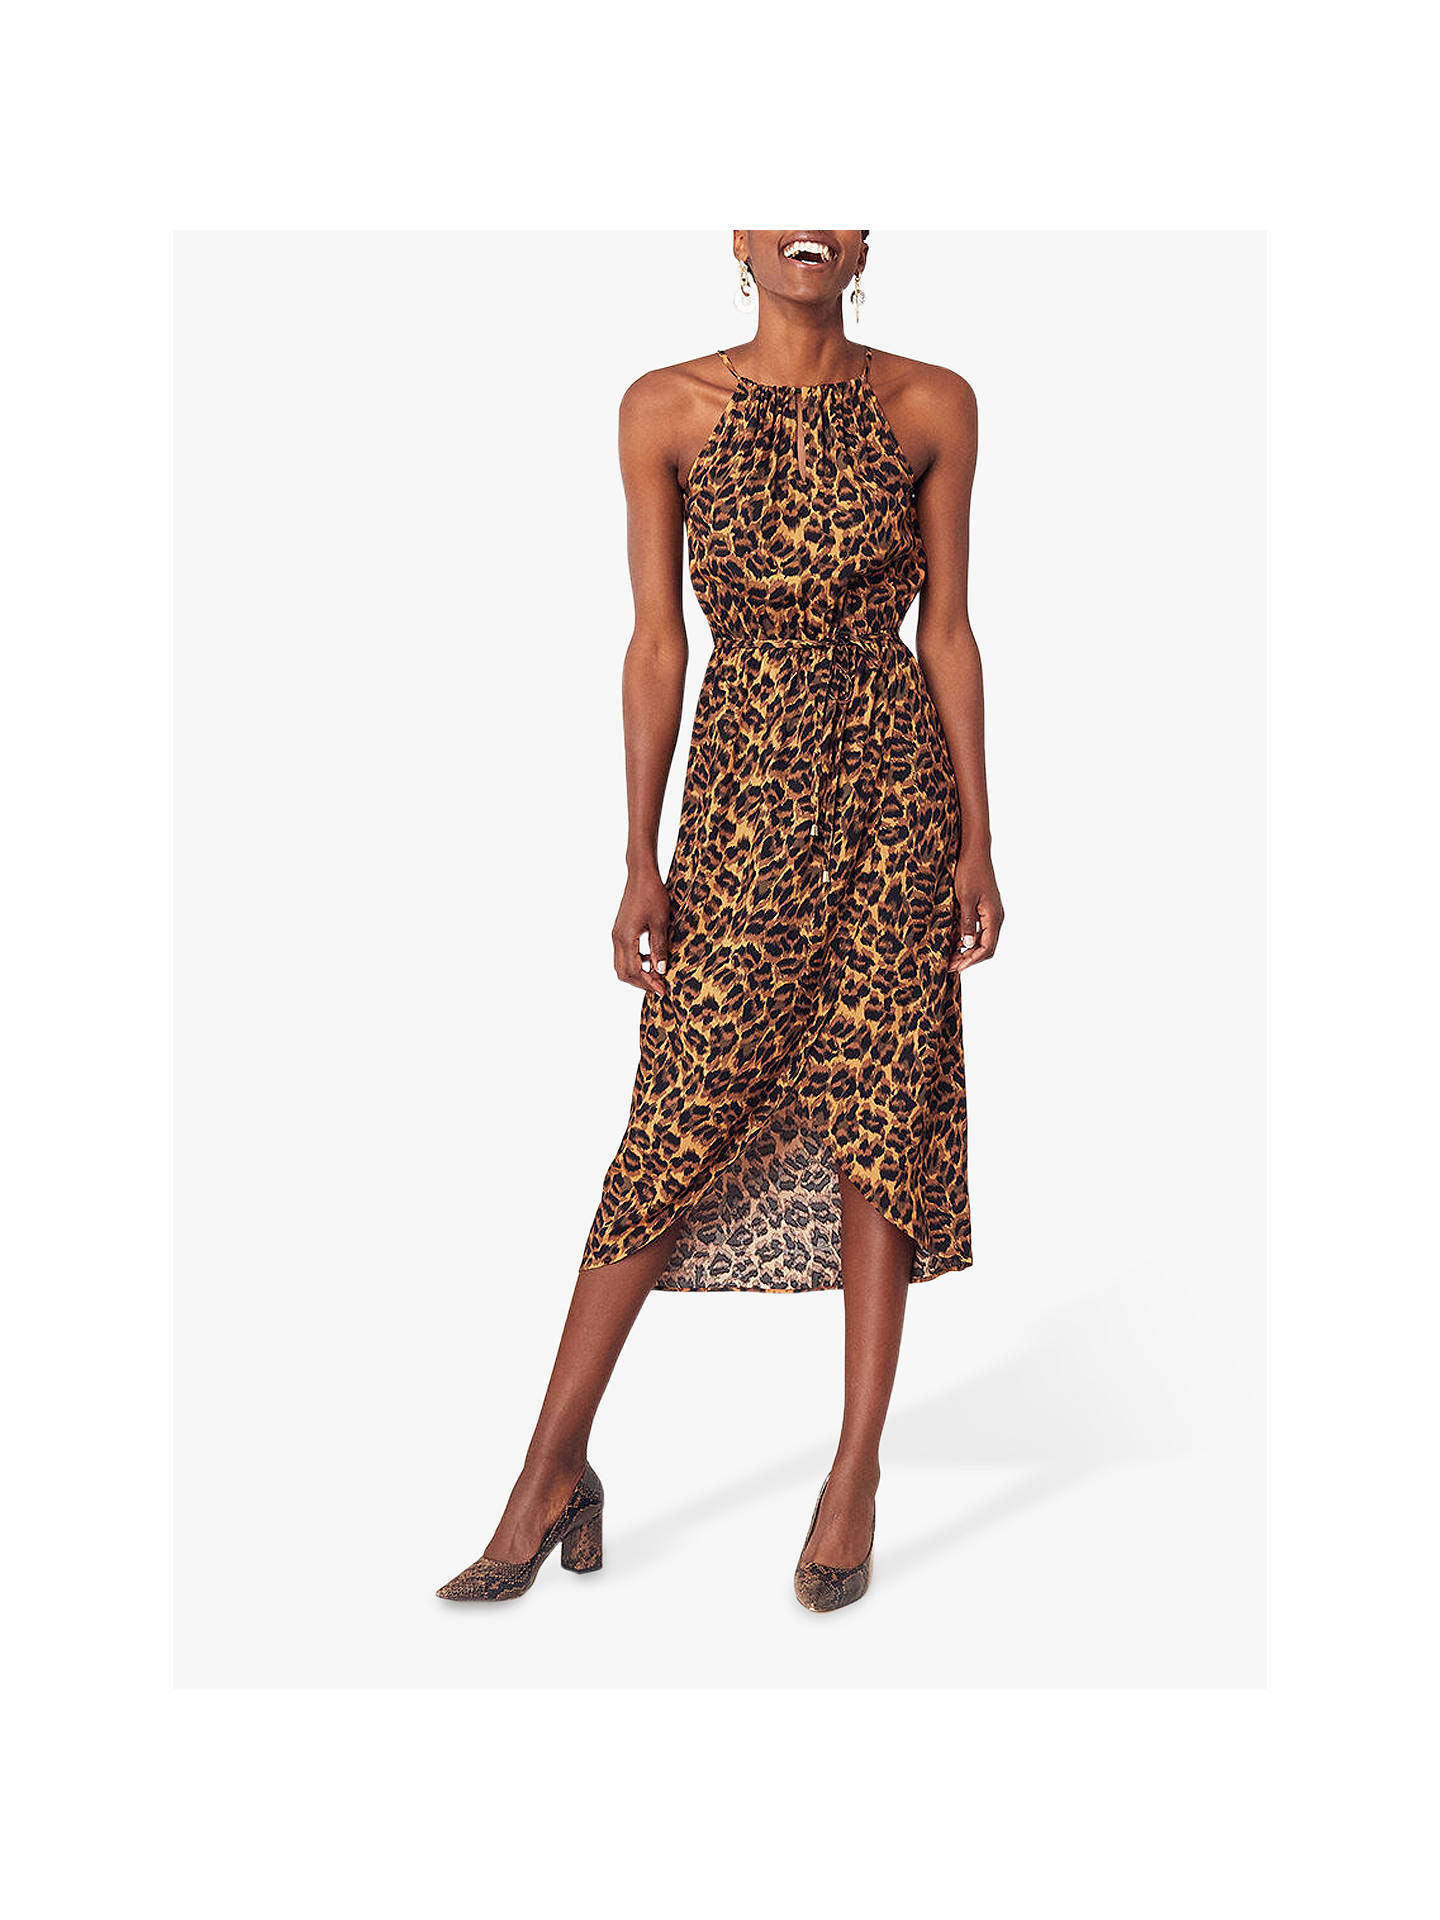 e86035183ae5 Buy Oasis Leopard Print Halter Dress, Multi, 6R Online at johnlewis.com ...